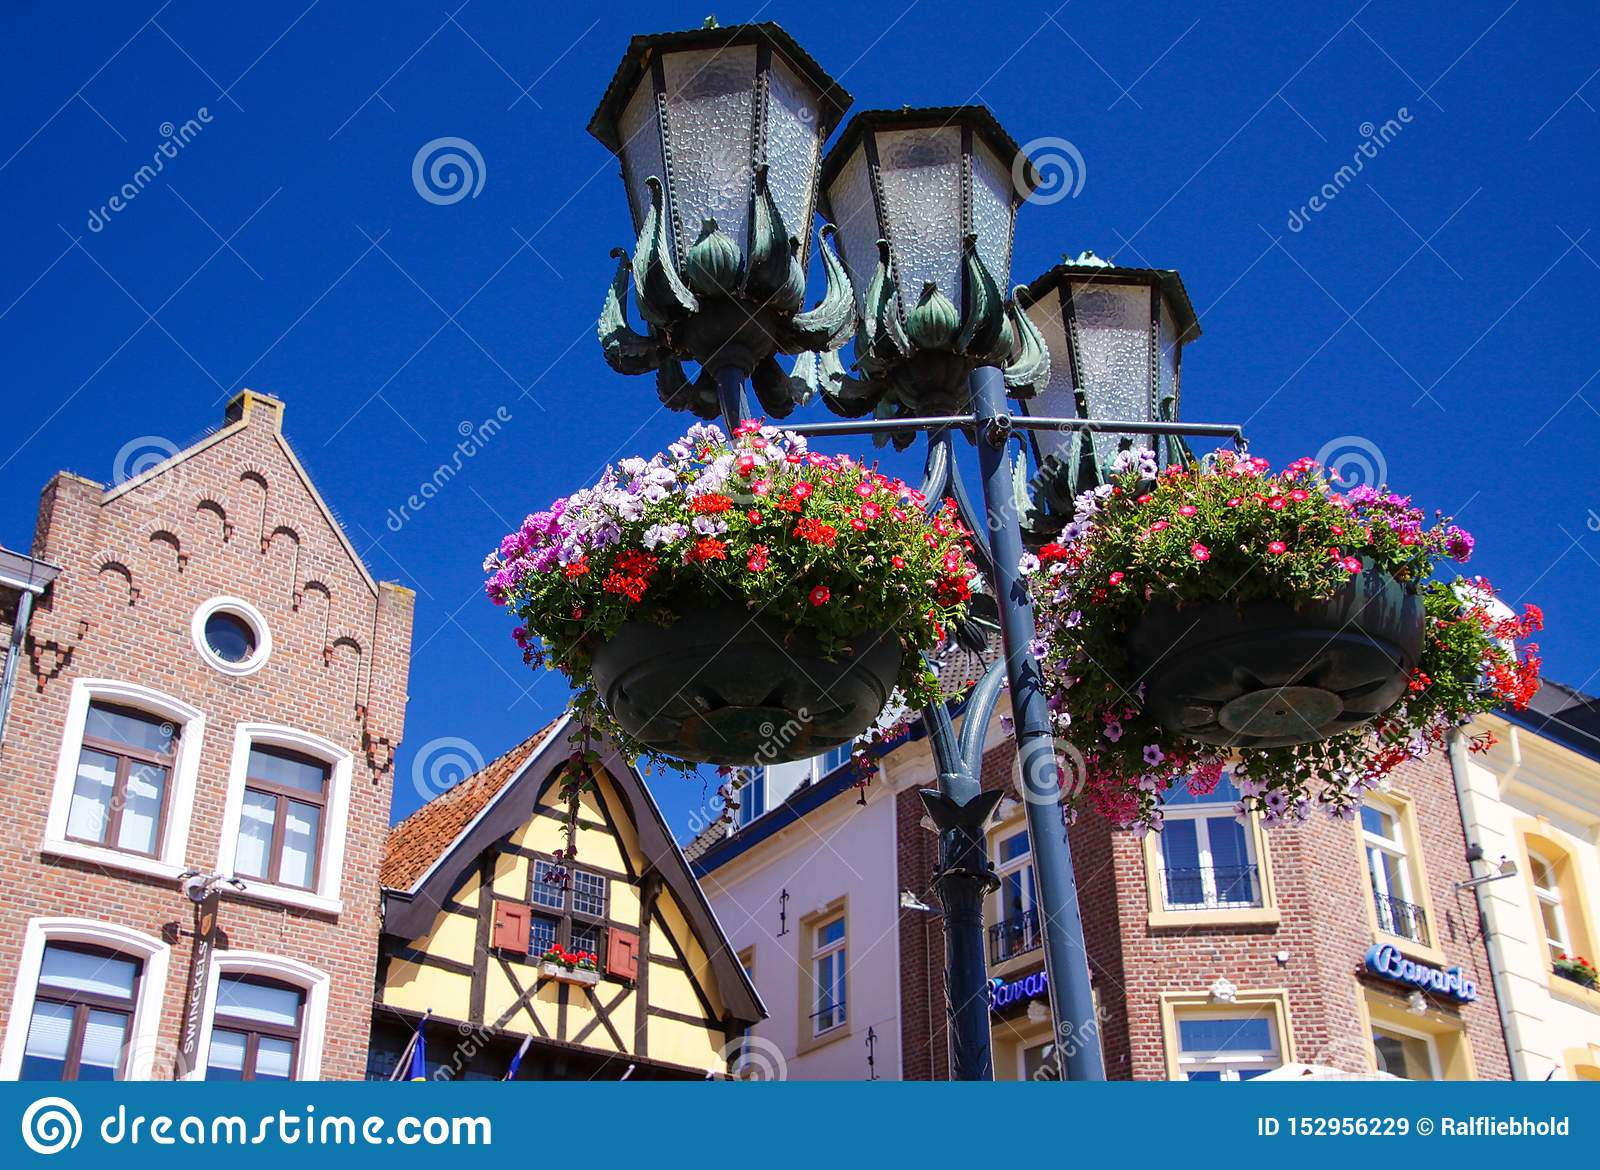 SITTARD, NETHERLANDS - JUIN 29. 2019: Low angle view on street lamps decorated with flower baskets against blue sky with medieval